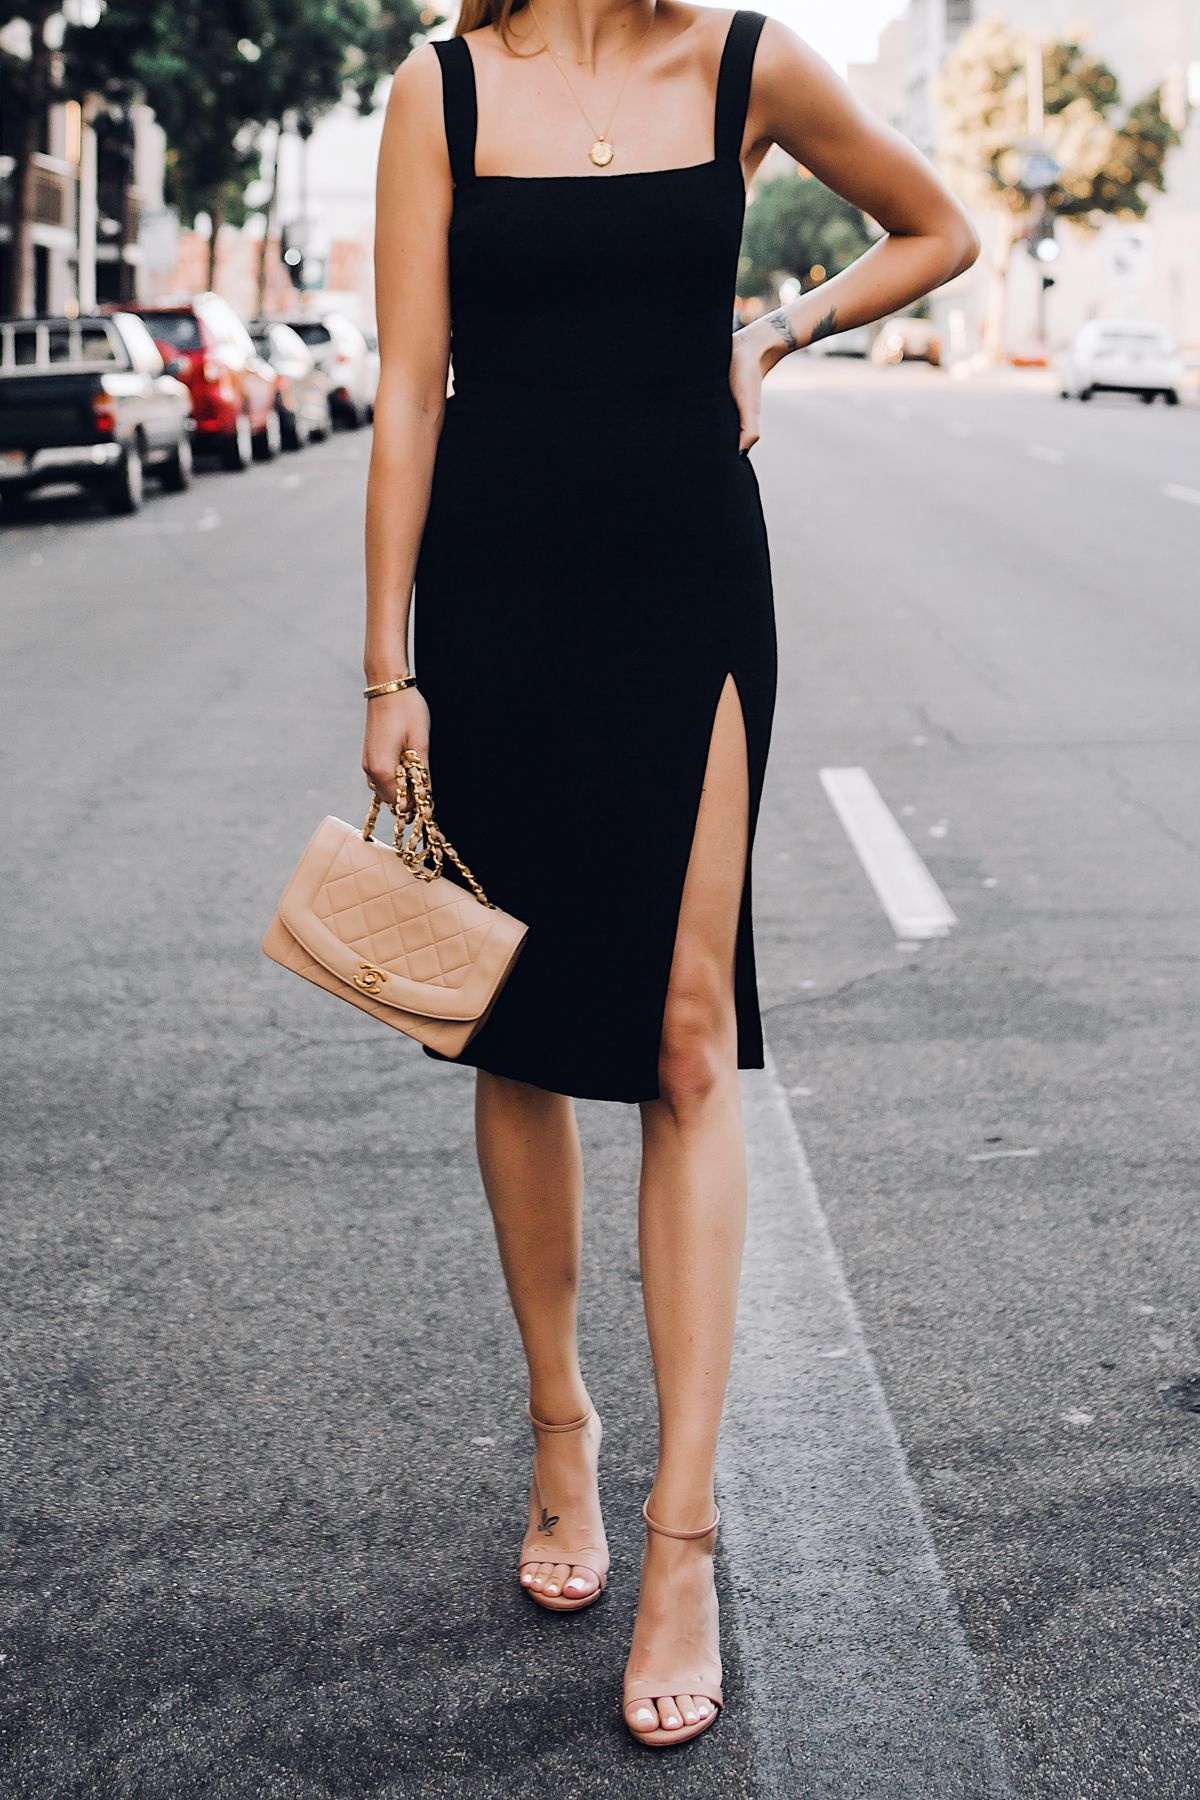 Ideas About The Black Dresses Make Us Look Simple And Elegant